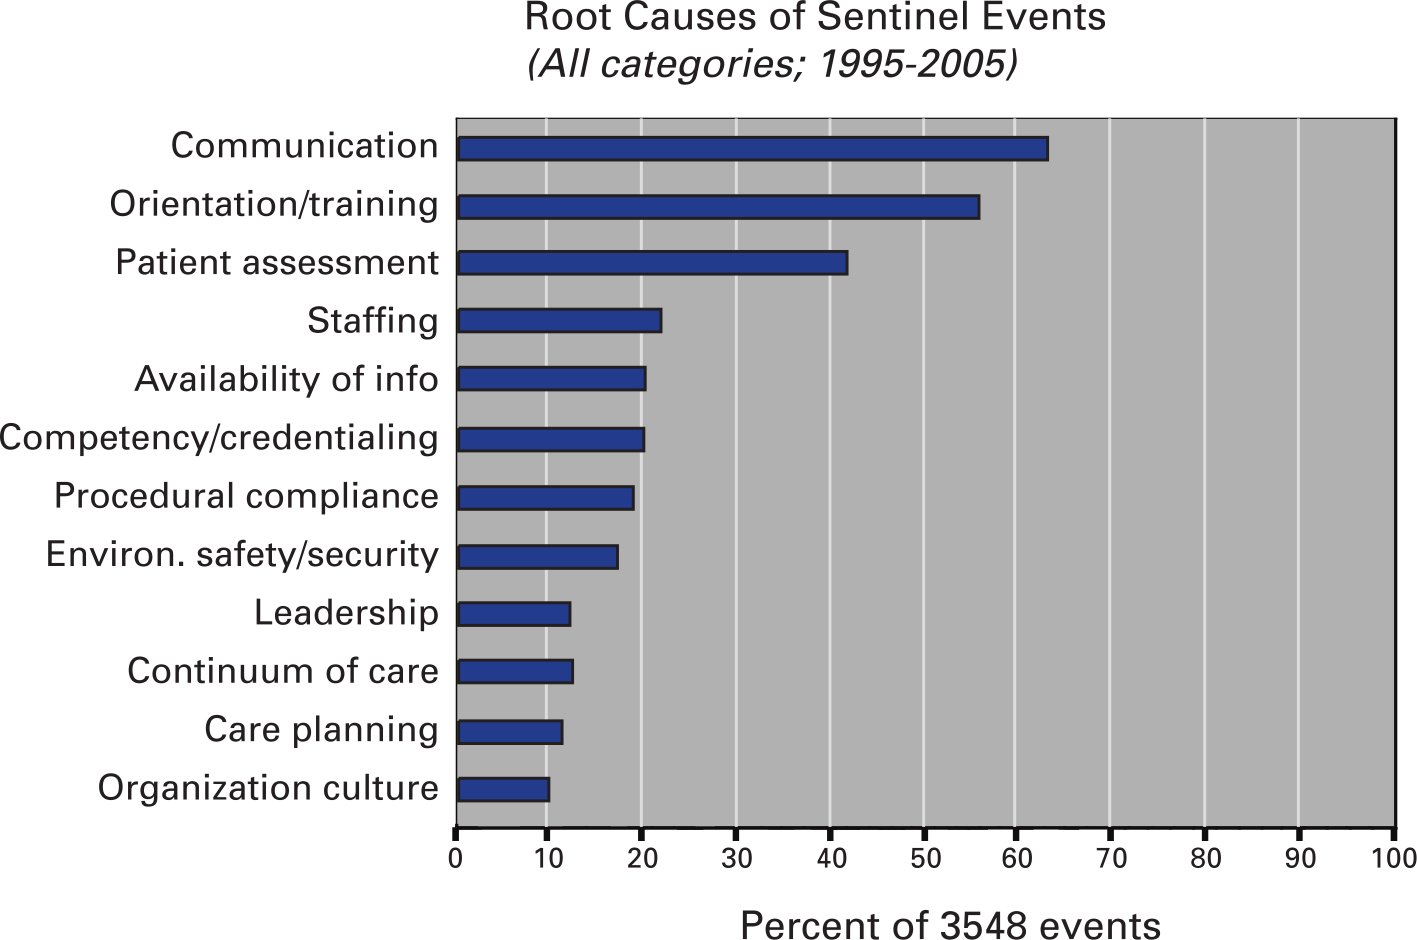 Root causes identified from root cause analyses of 3548 sentinel events